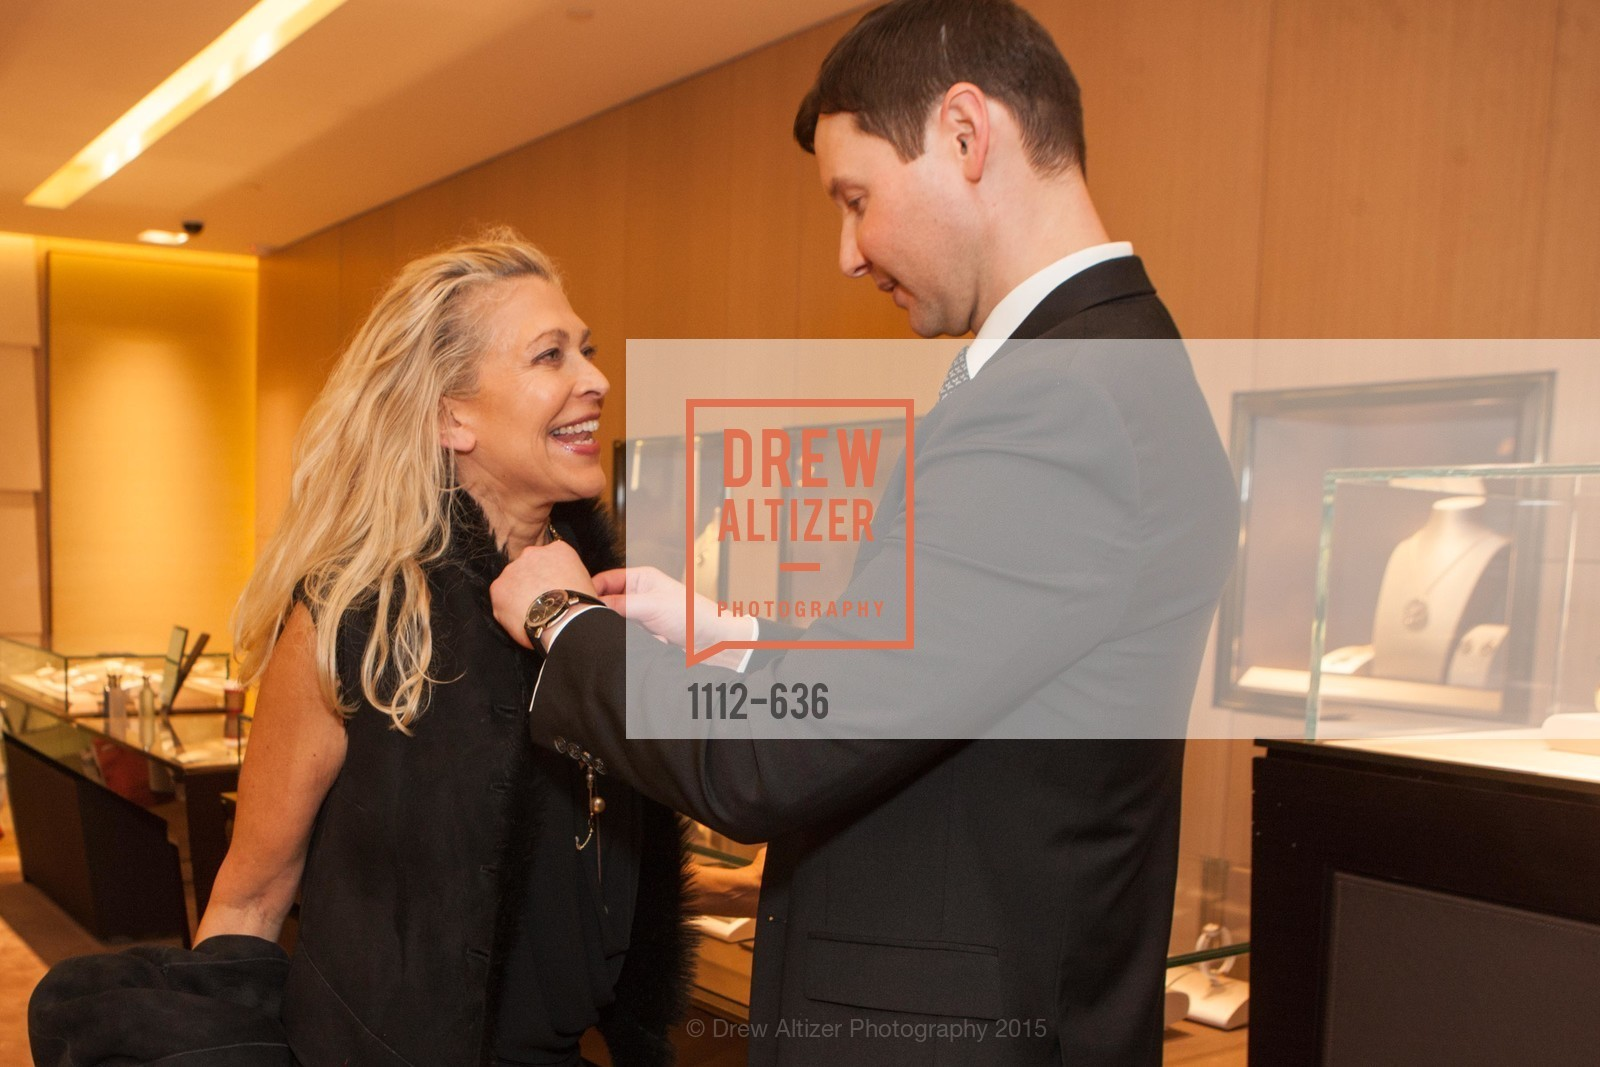 Suzanna Jackson, Ivan Bekichev, Bulgari San Francisco Presents WINE, WHISKEY & WATCHES, Bulgari San Francisco. 200 Stockton Street, December 8th, 2015,Drew Altizer, Drew Altizer Photography, full-service agency, private events, San Francisco photographer, photographer california